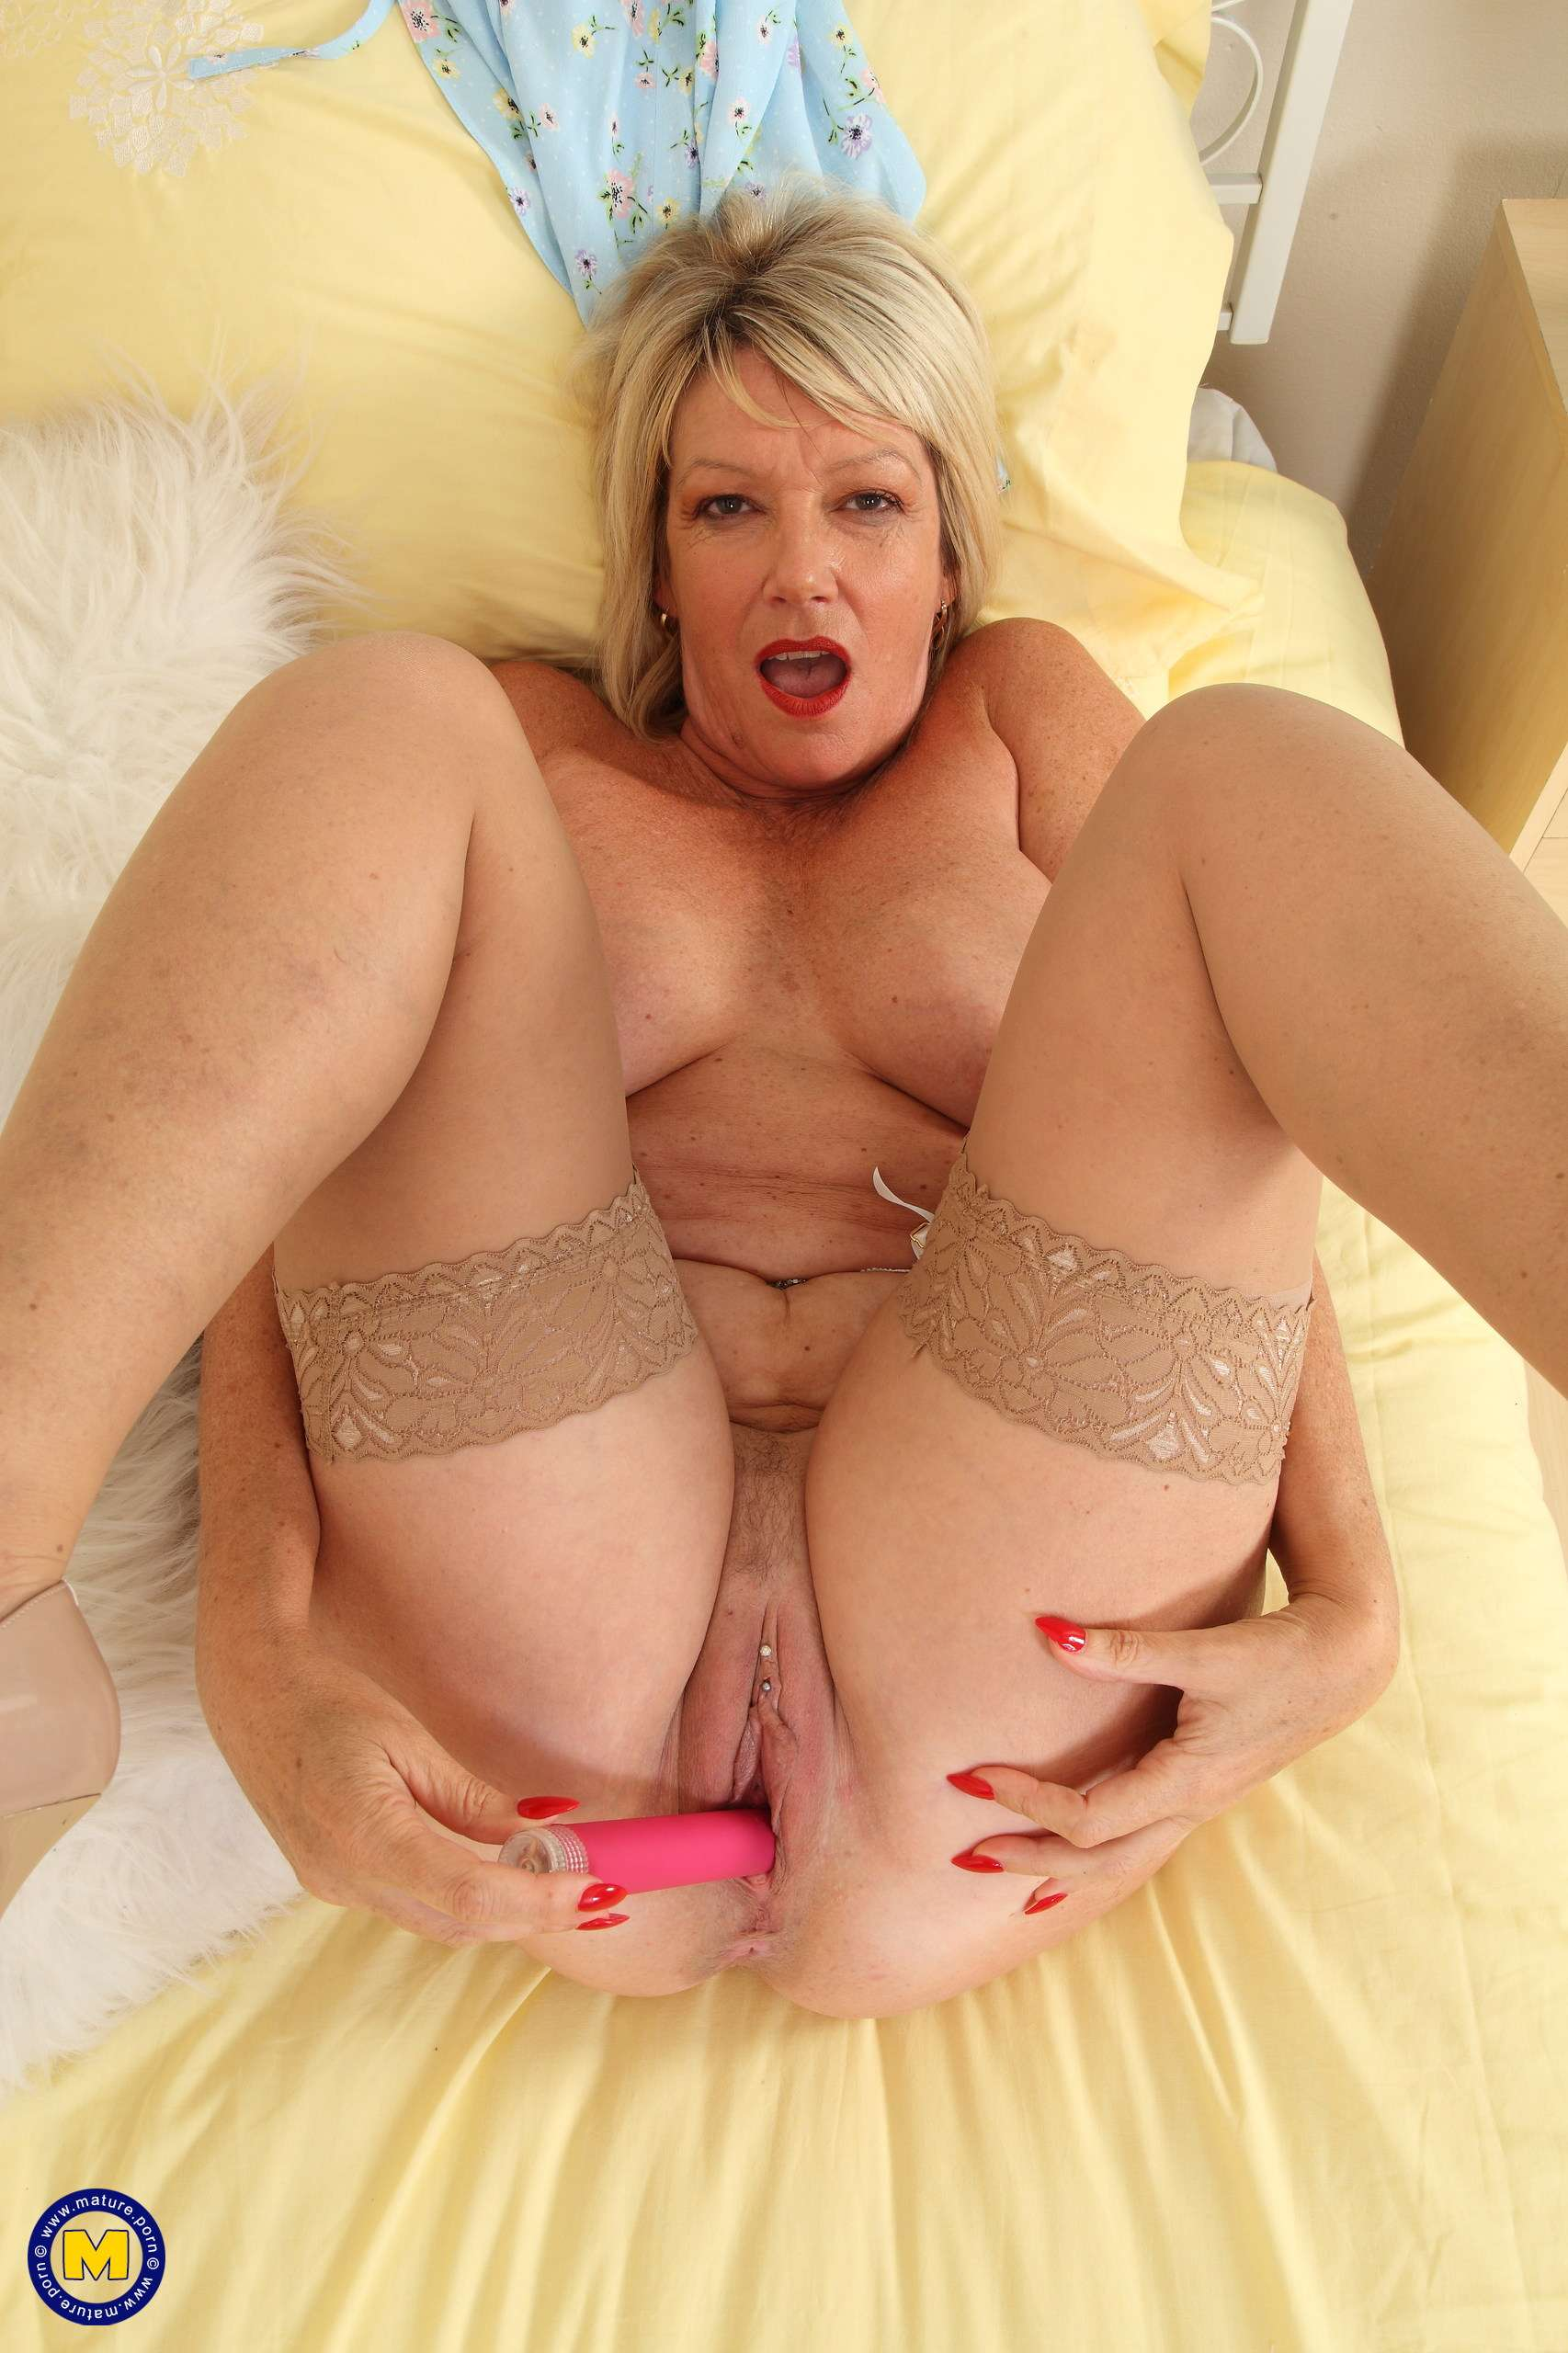 Naughty British cougar Amy plays with her wet pussy